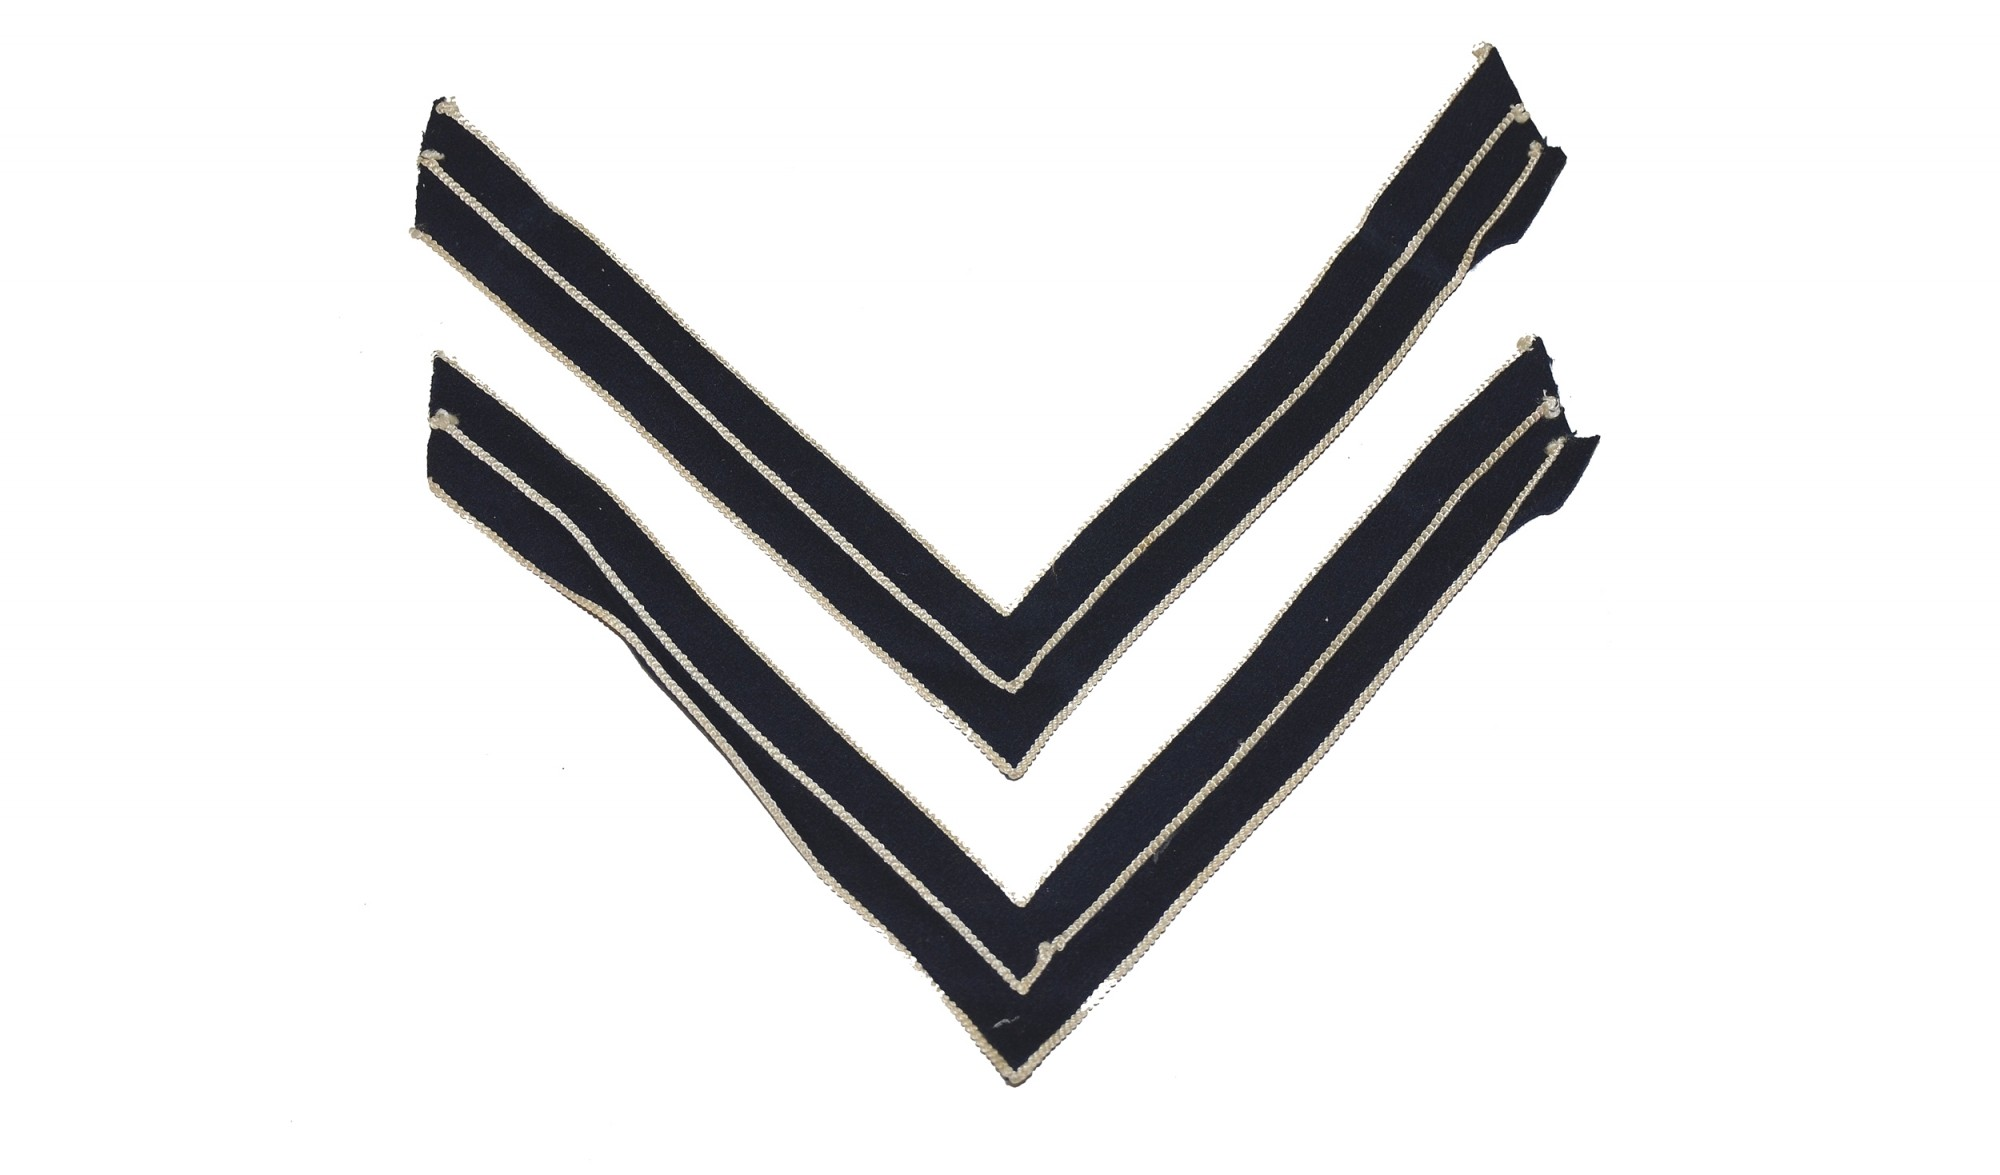 1902 INFANTRY CORPORAL'S CHEVRONS